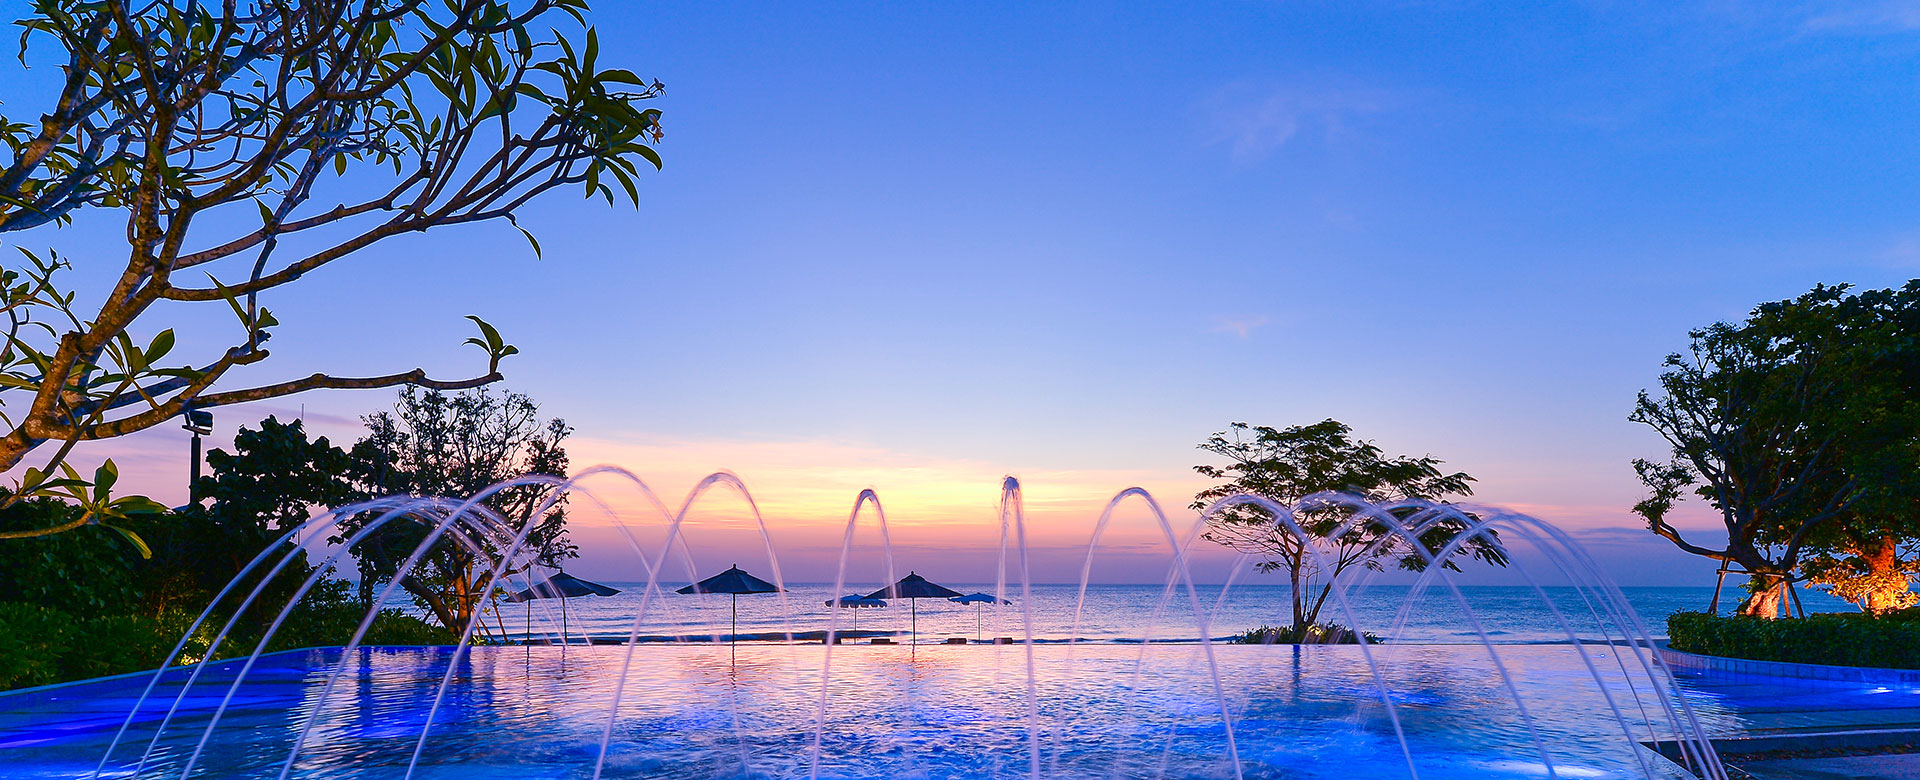 10-Facilities-Baba-Beach-Club-Luxury-Hotel-Hua-Hin-by-Sri-Panwa